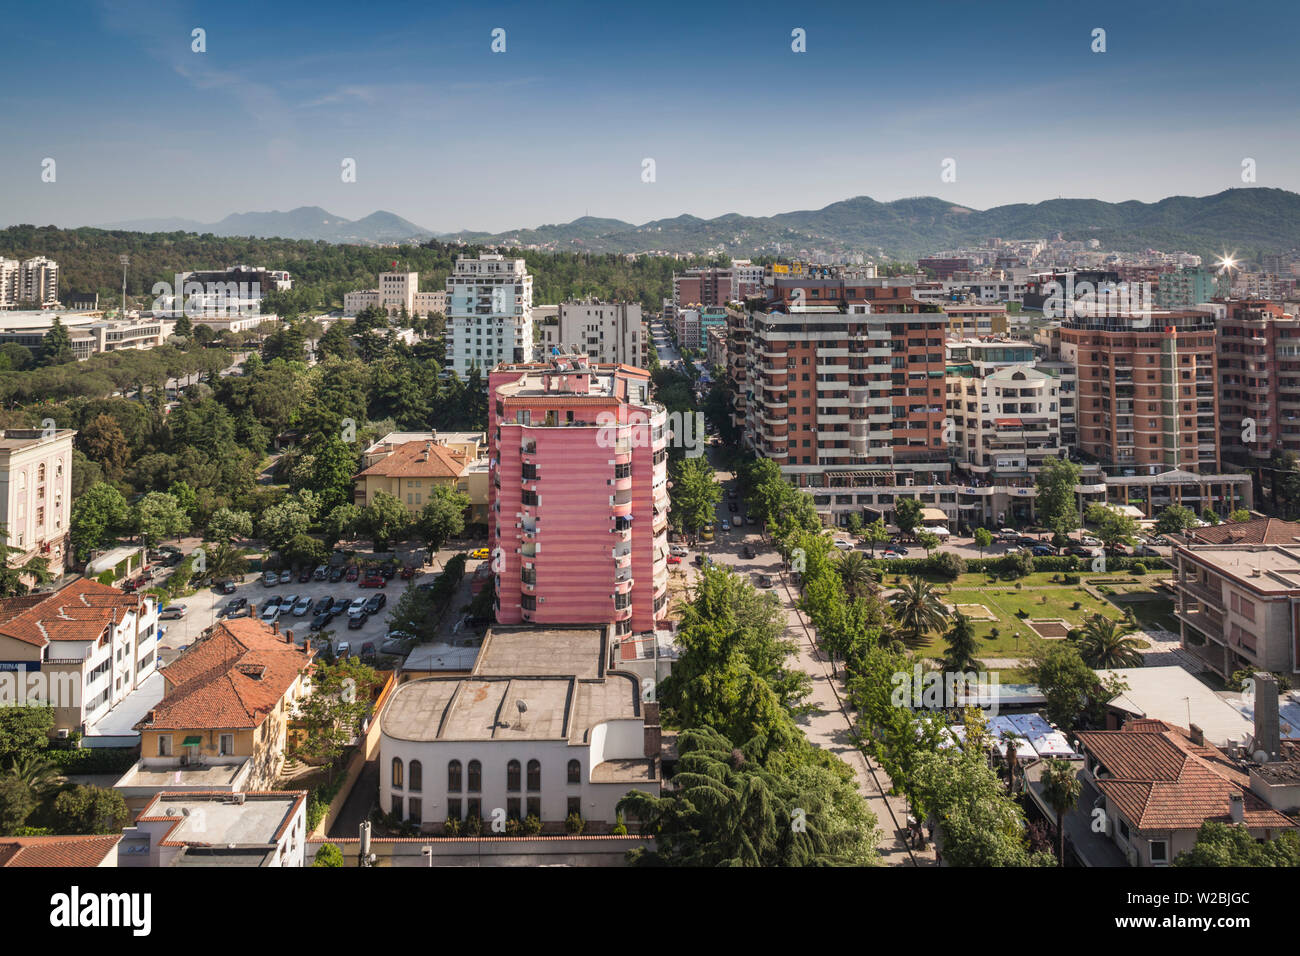 Albania, Tirana, Blloku area, formerly used by Communist party elite, elevated view - Stock Image